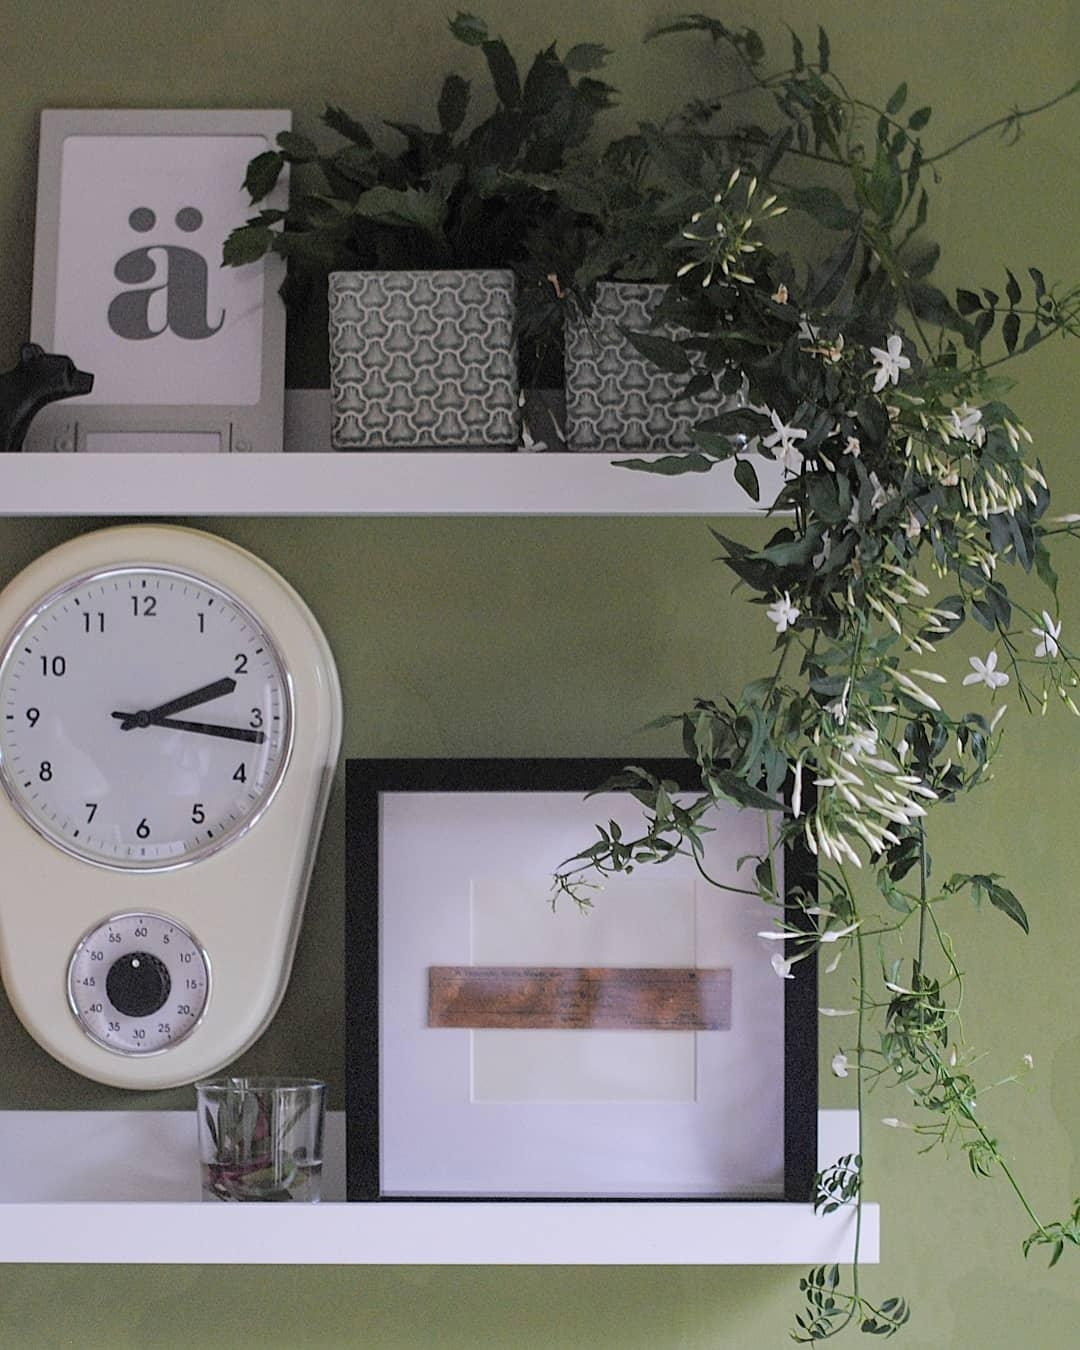 kitchendetails. 